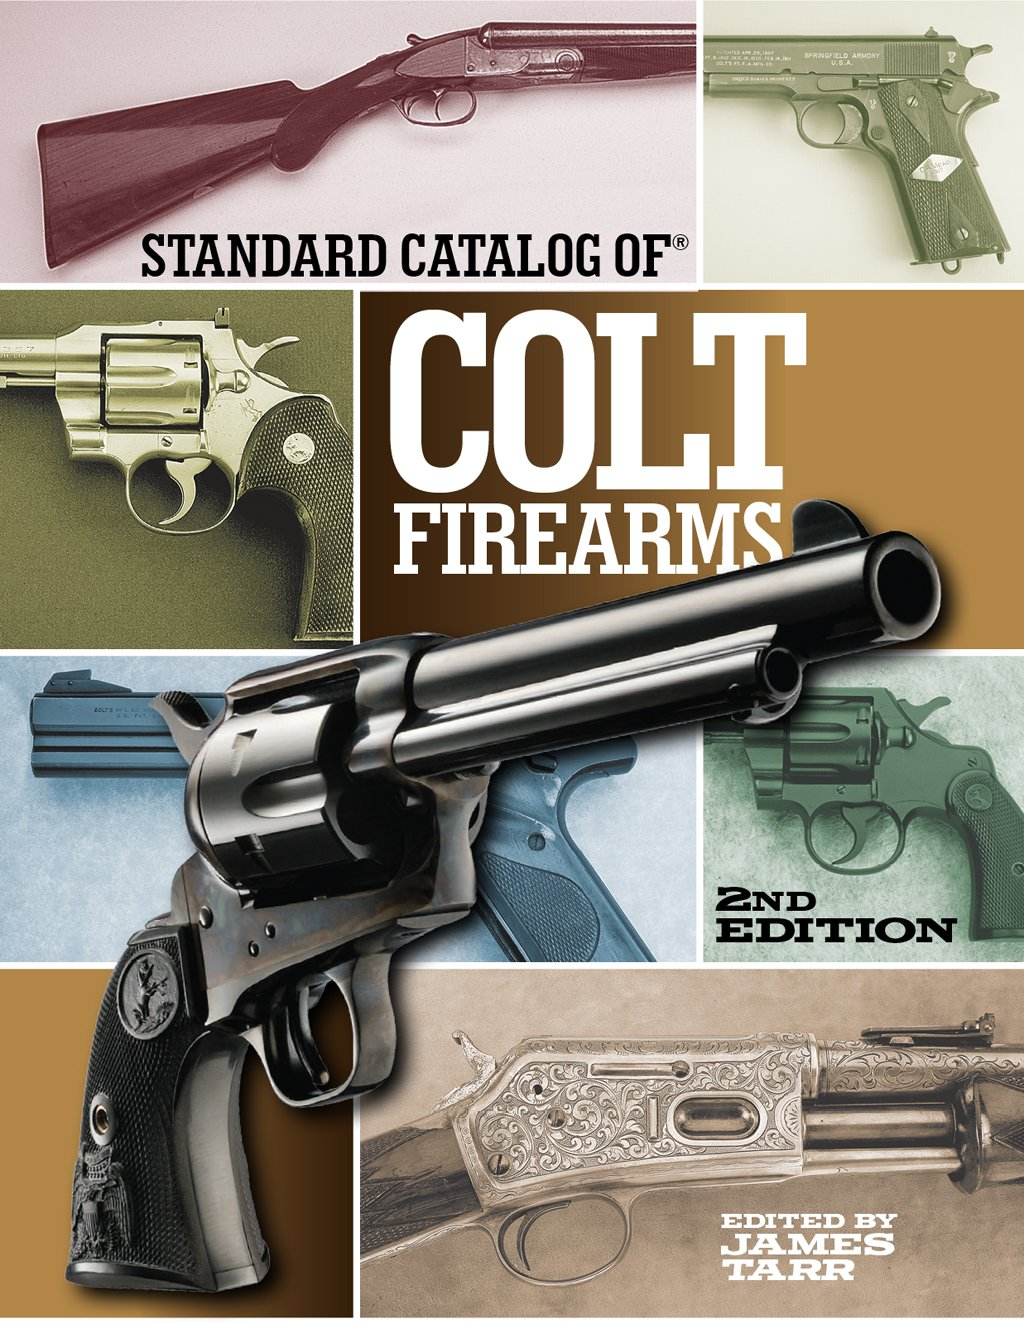 Amazon com: Standard Catalog of Colt Firearms (9781440237478